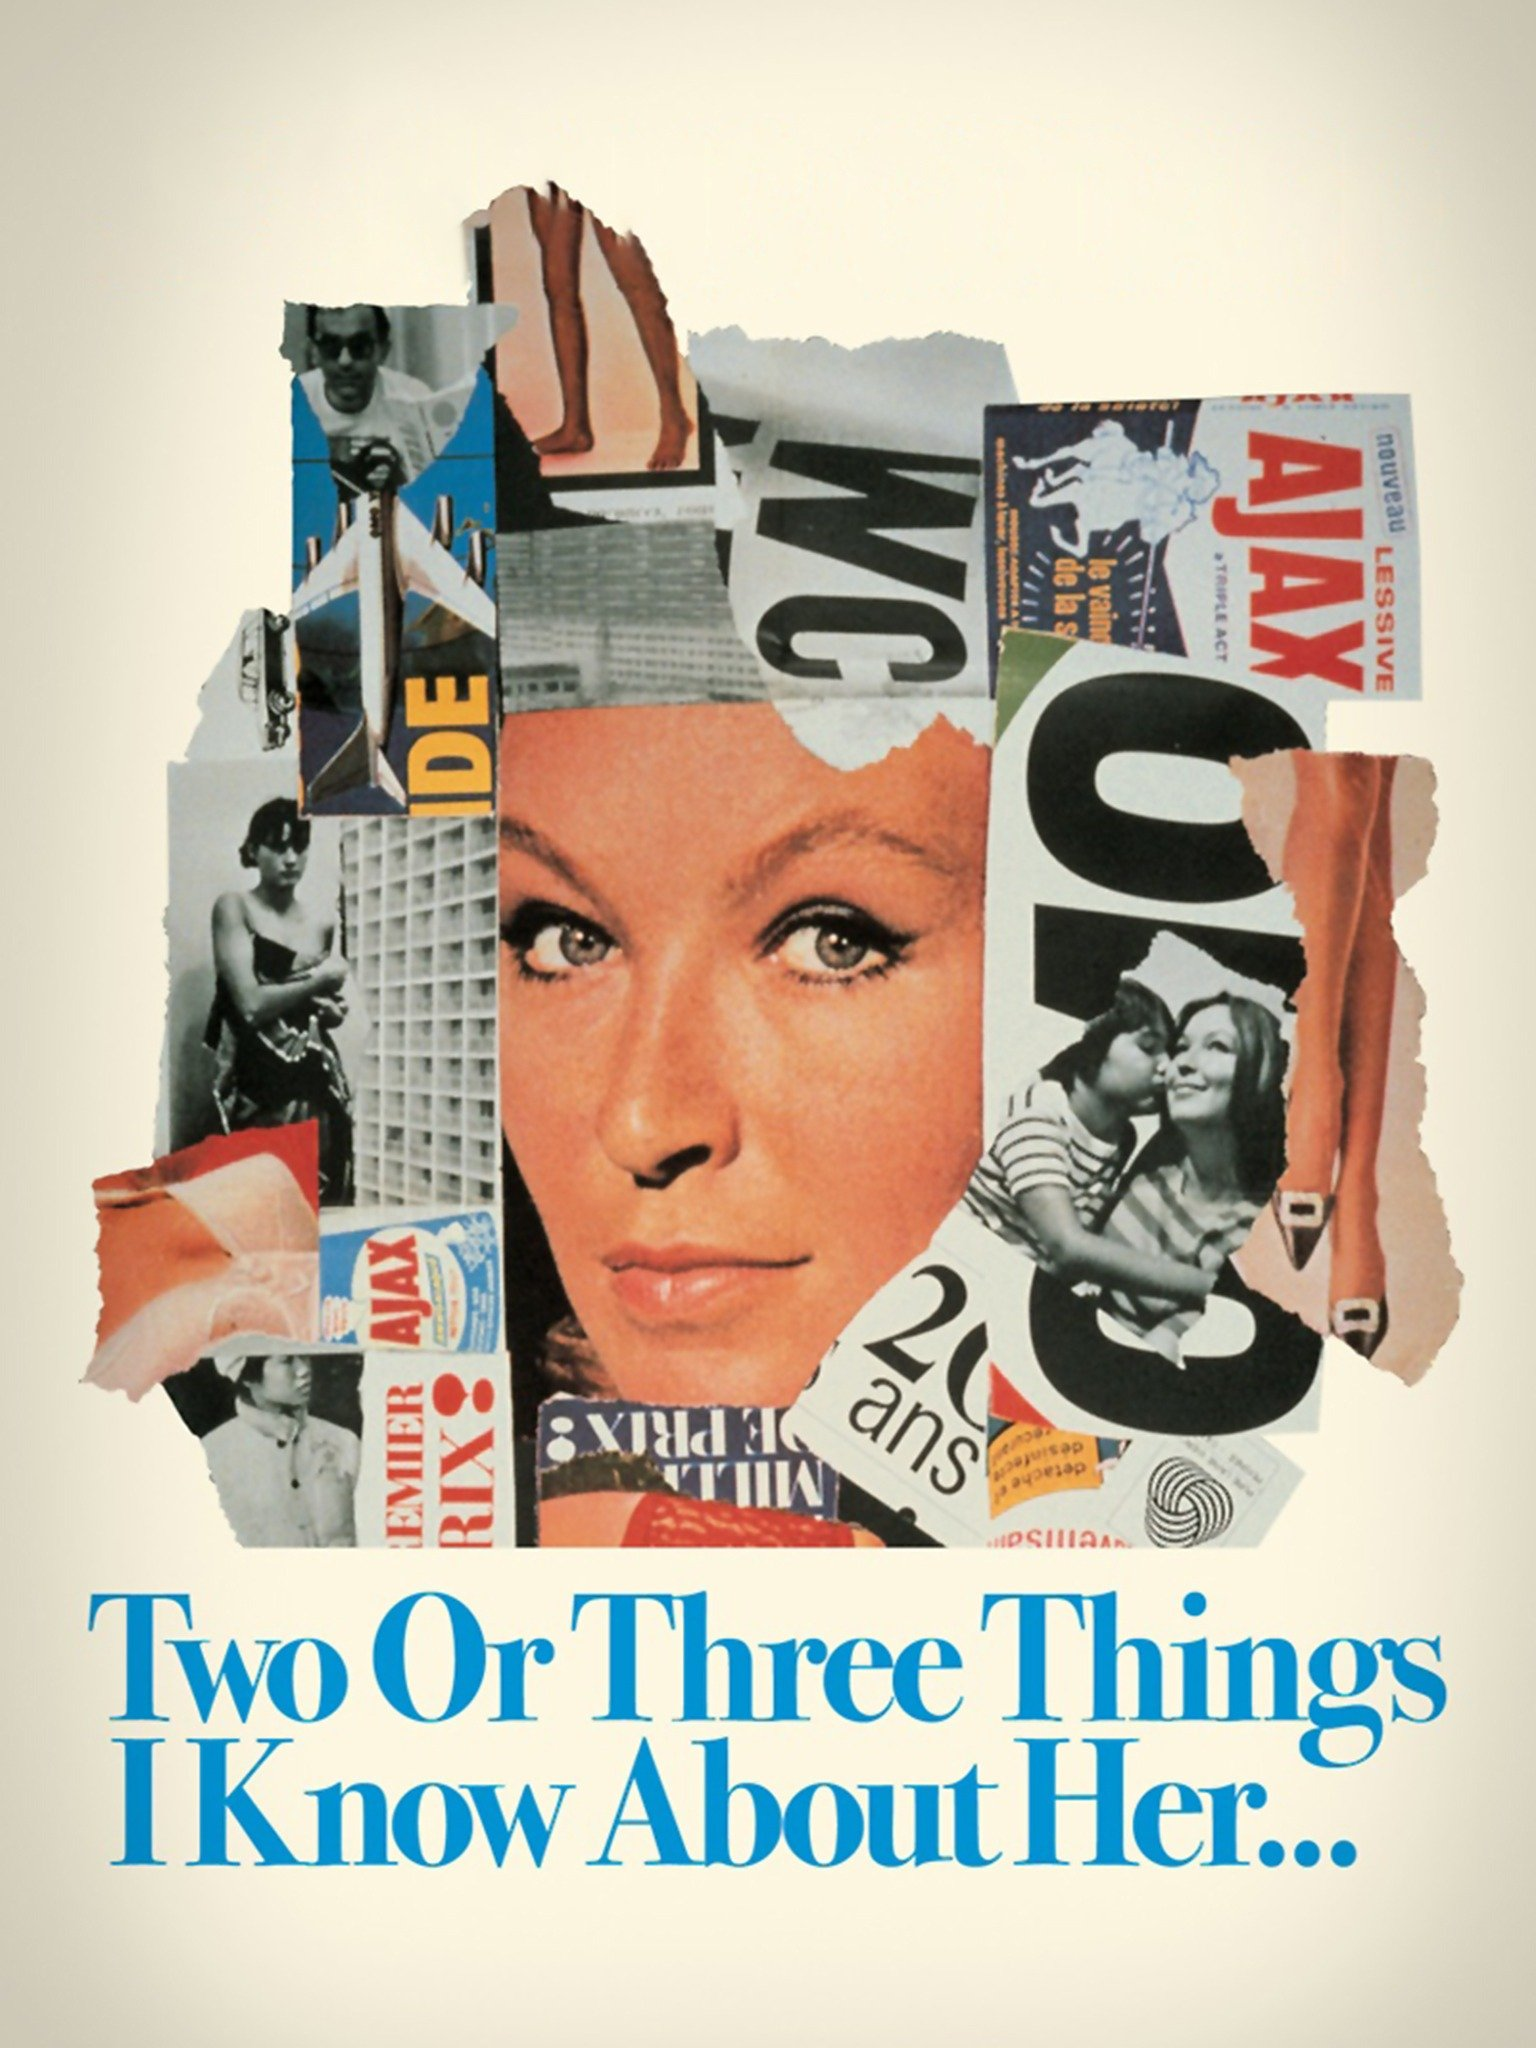 Ce Que Je Sais D Elle : Three, Things, About, (1967), Rotten, Tomatoes